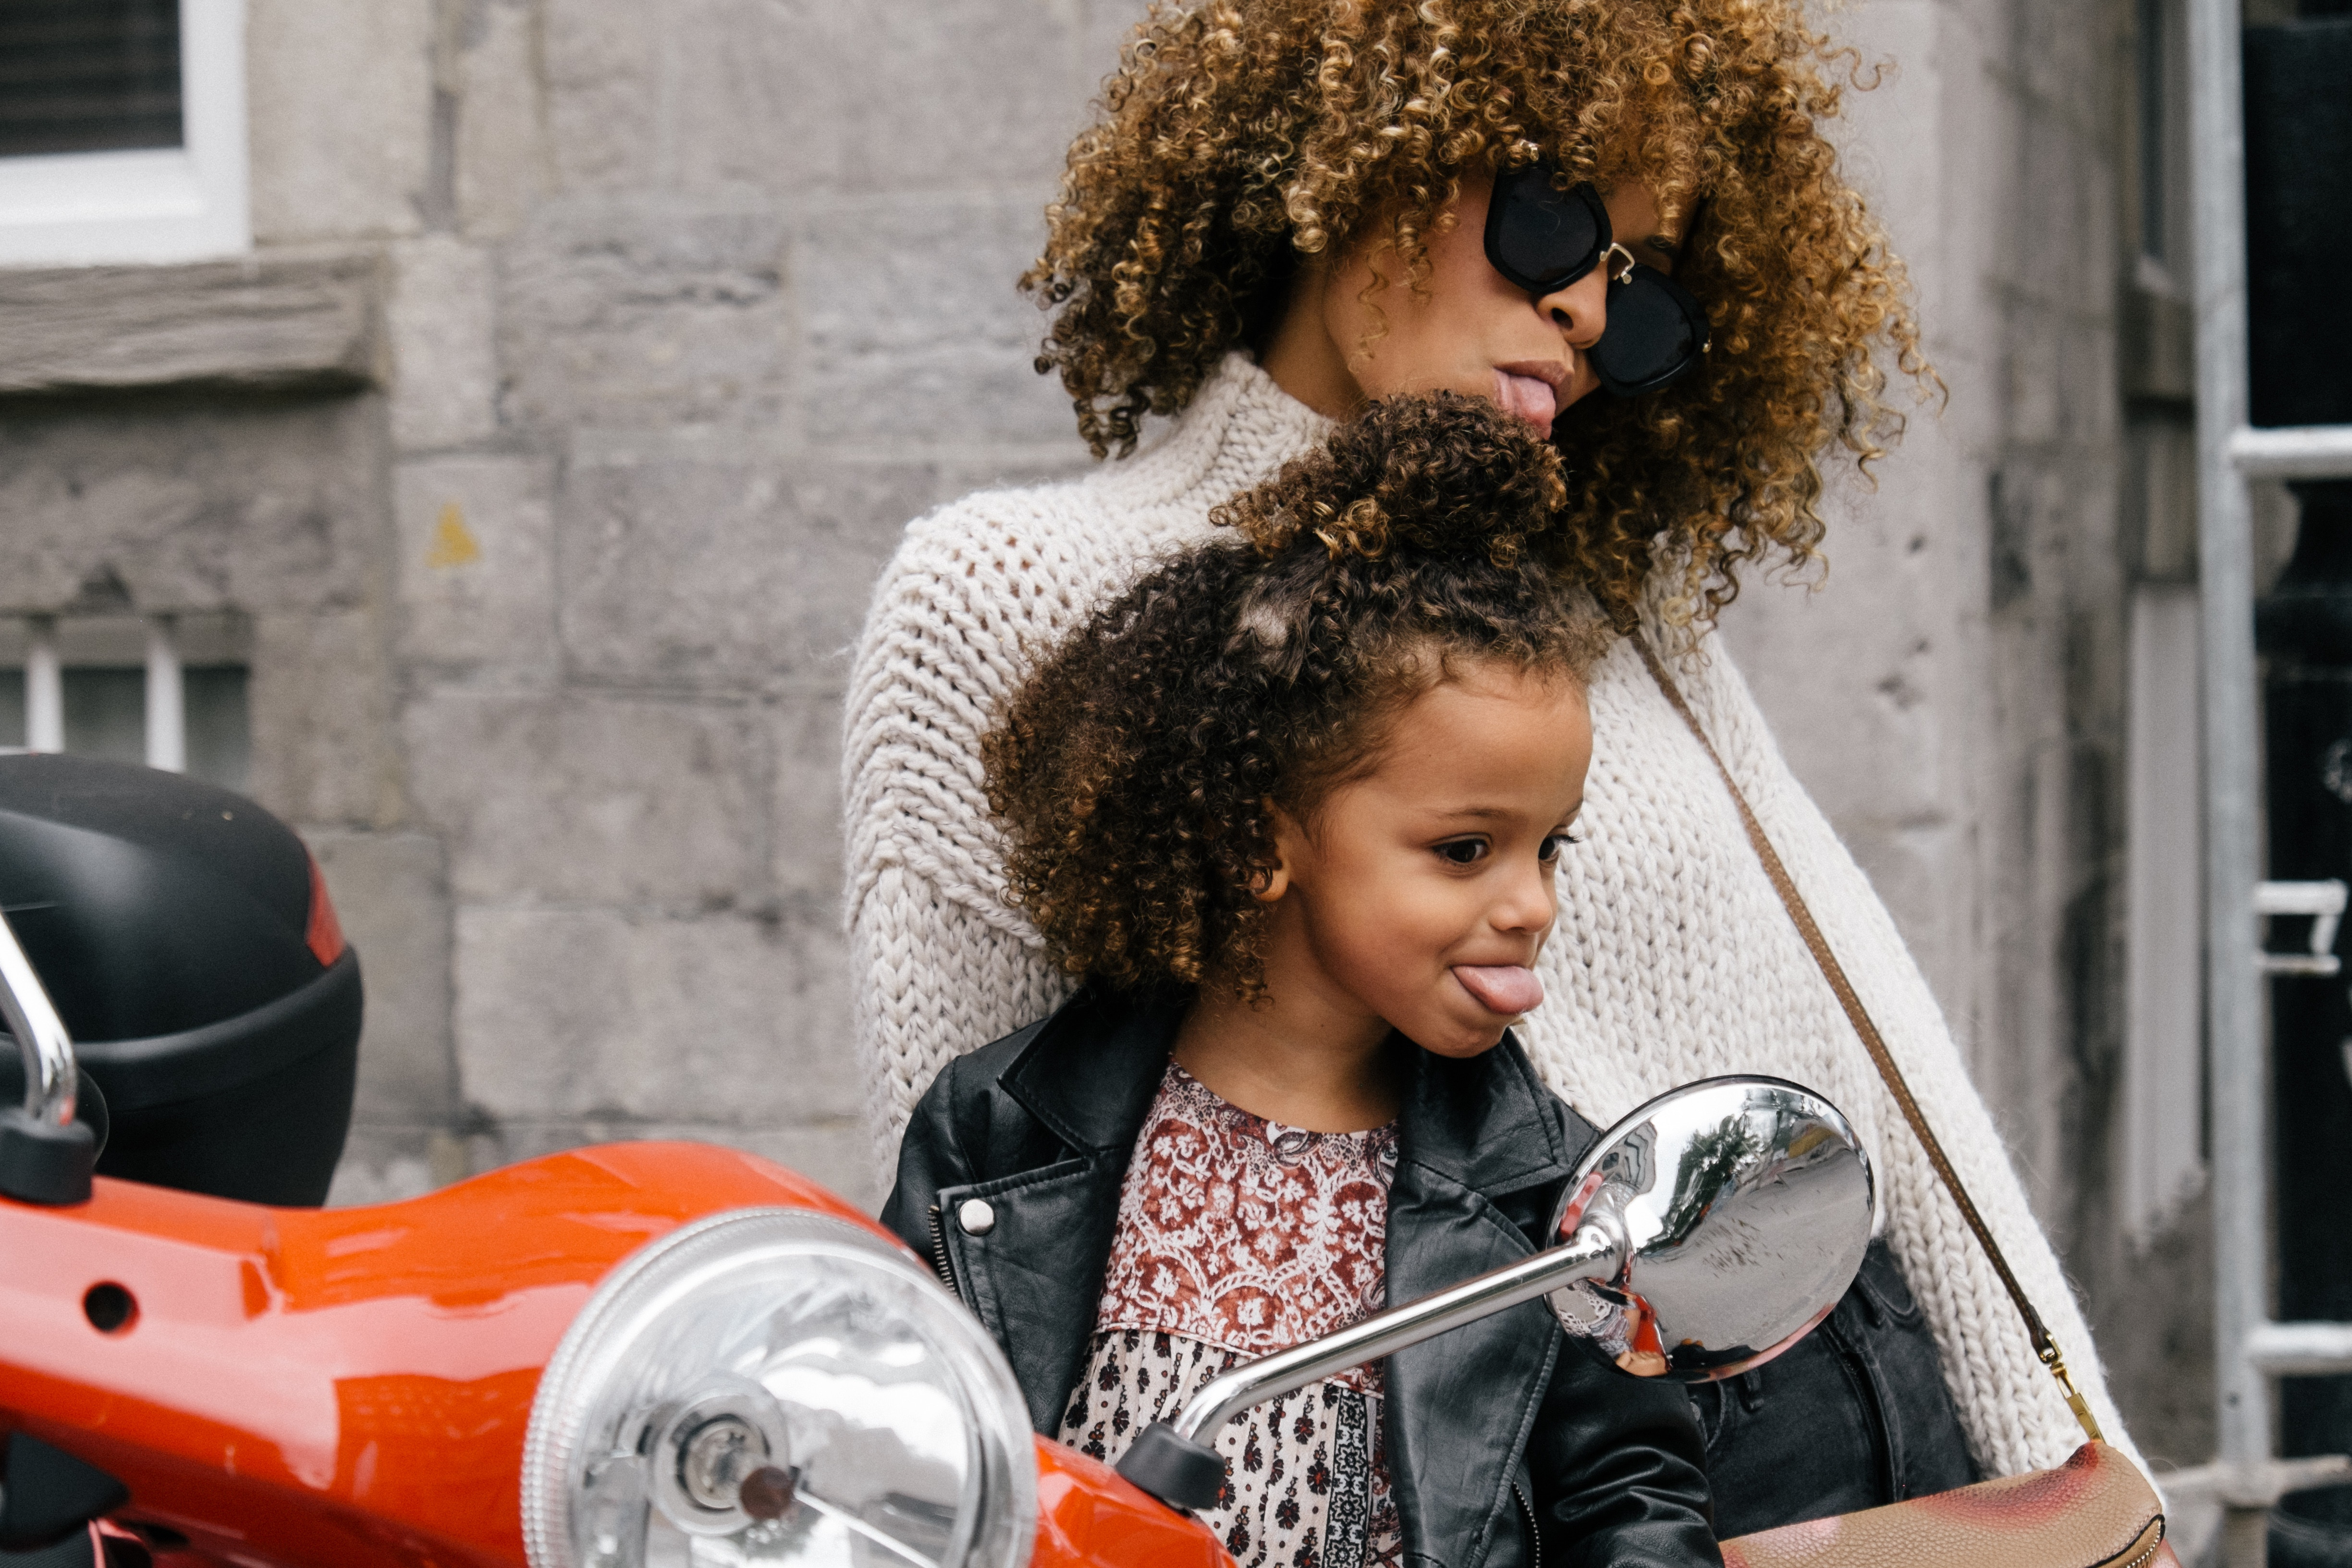 We Asked, You Answered: How to be an Empowered Mom